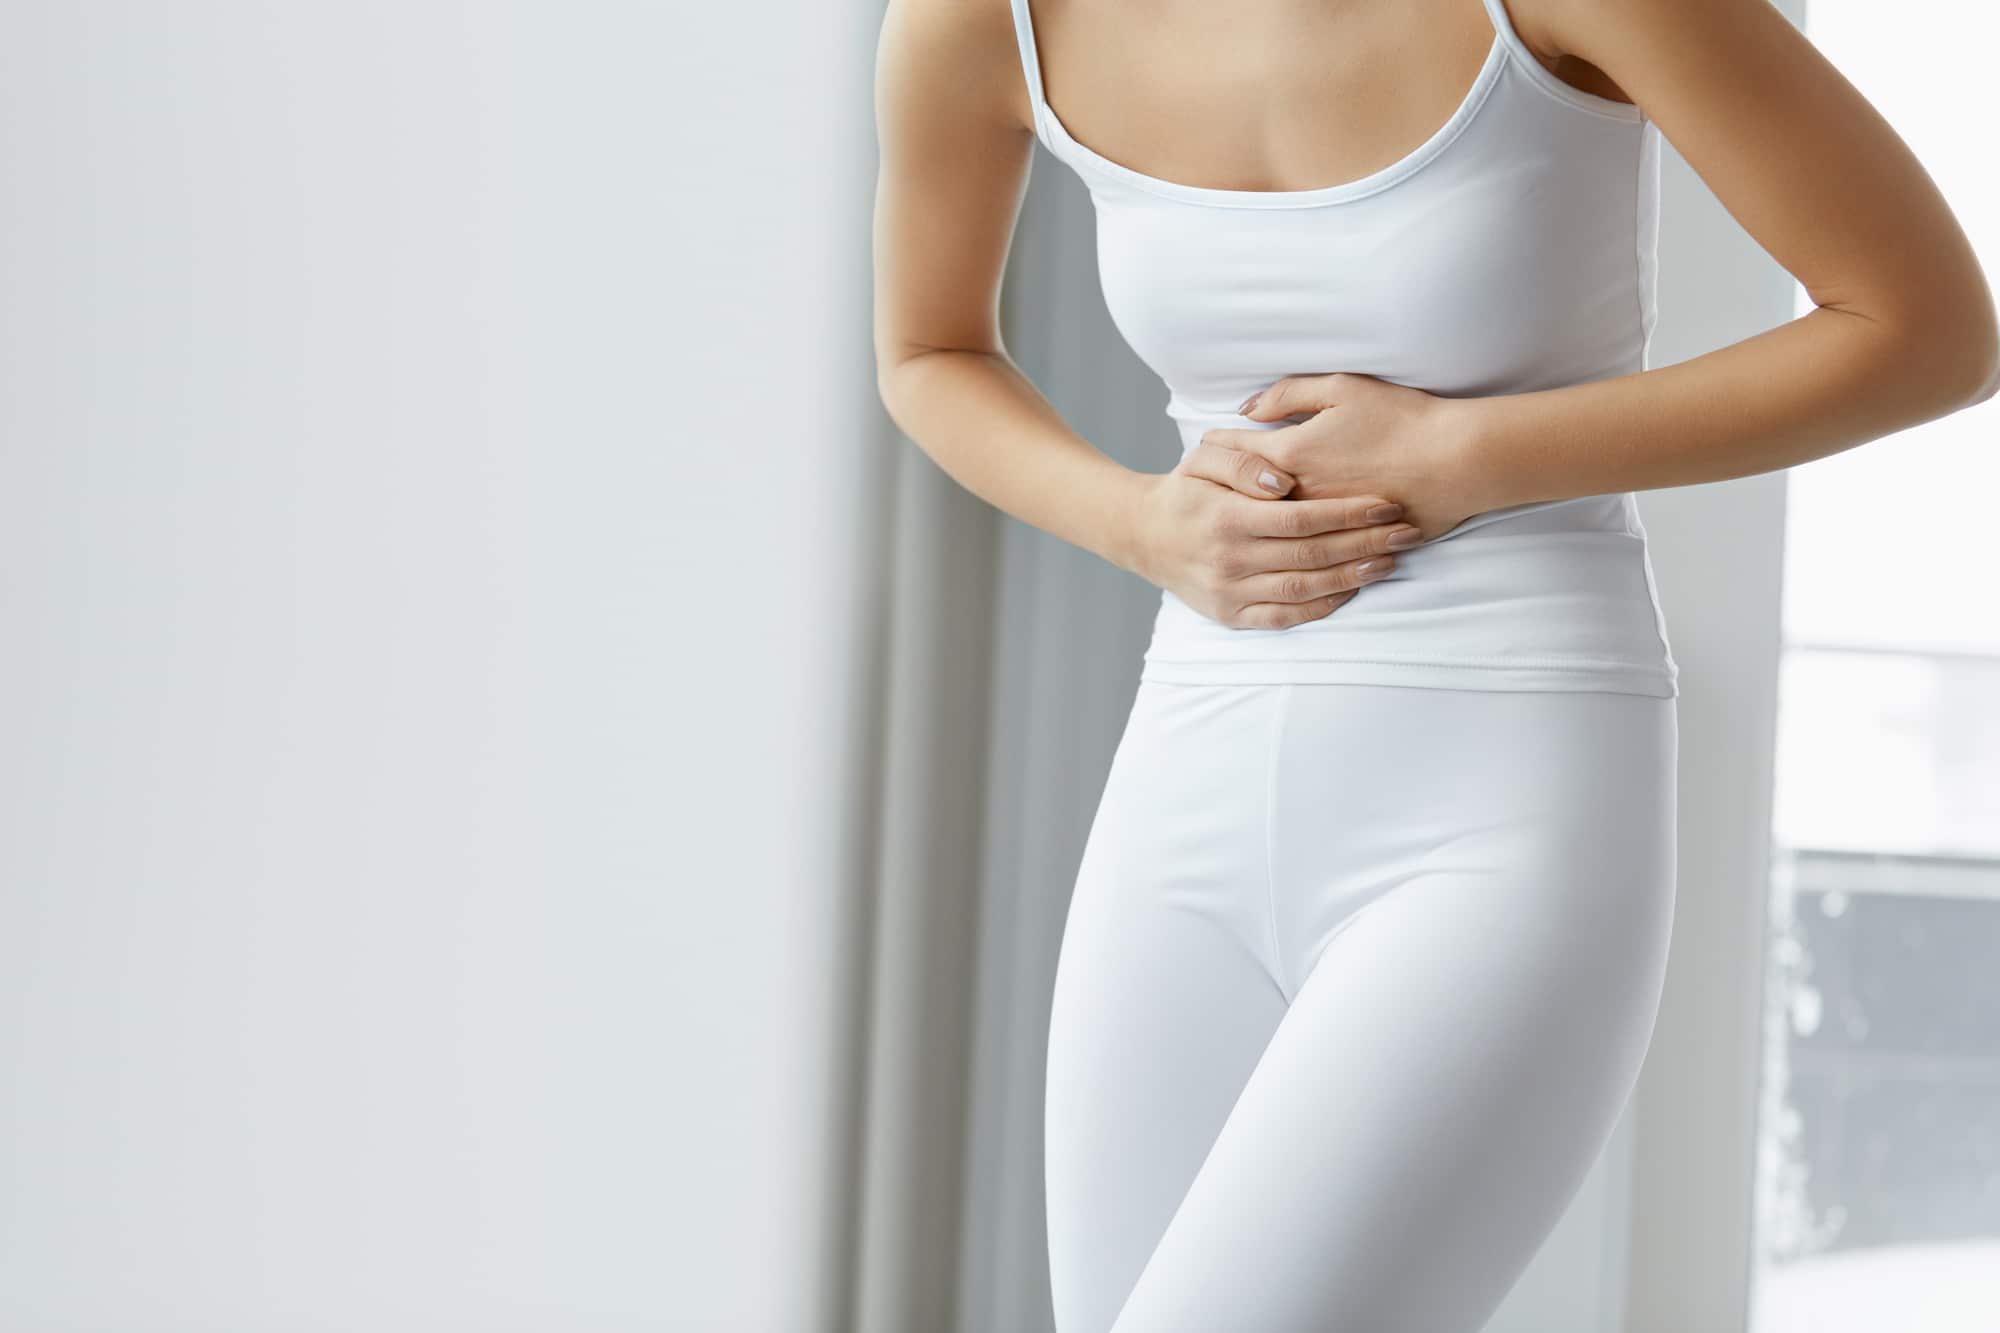 How Eating Disorders Can Lead to Menstrual Issues